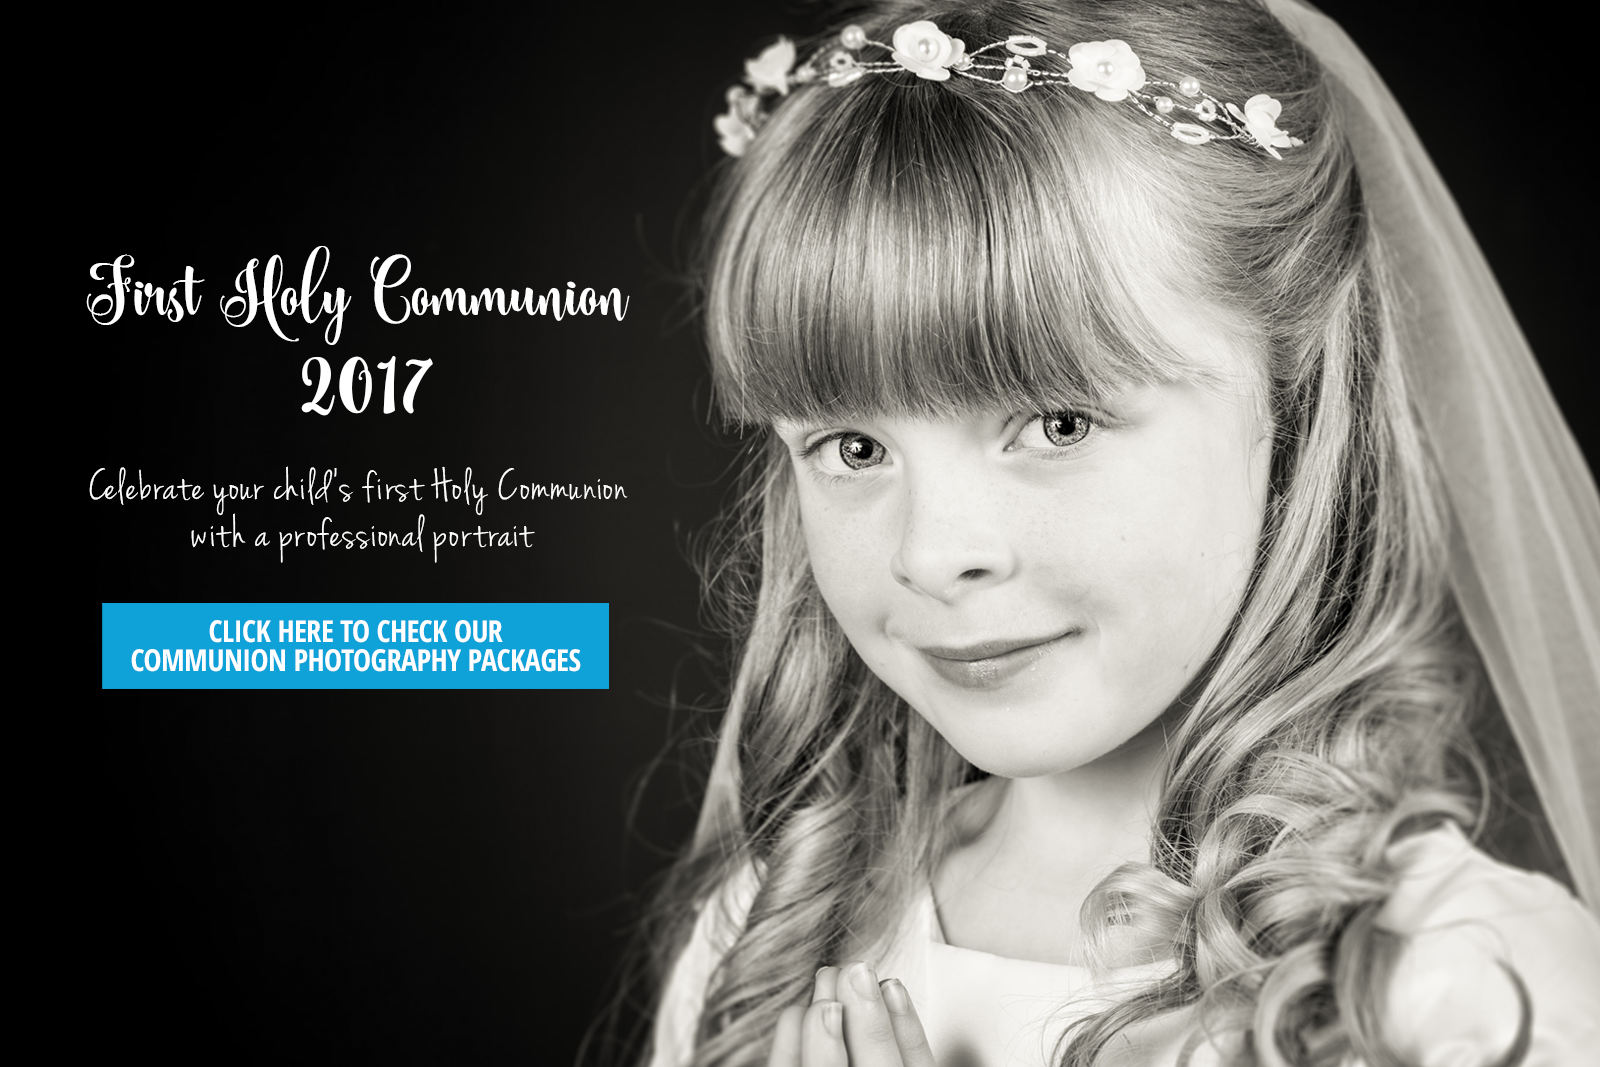 First Holy Communion Photography 2017